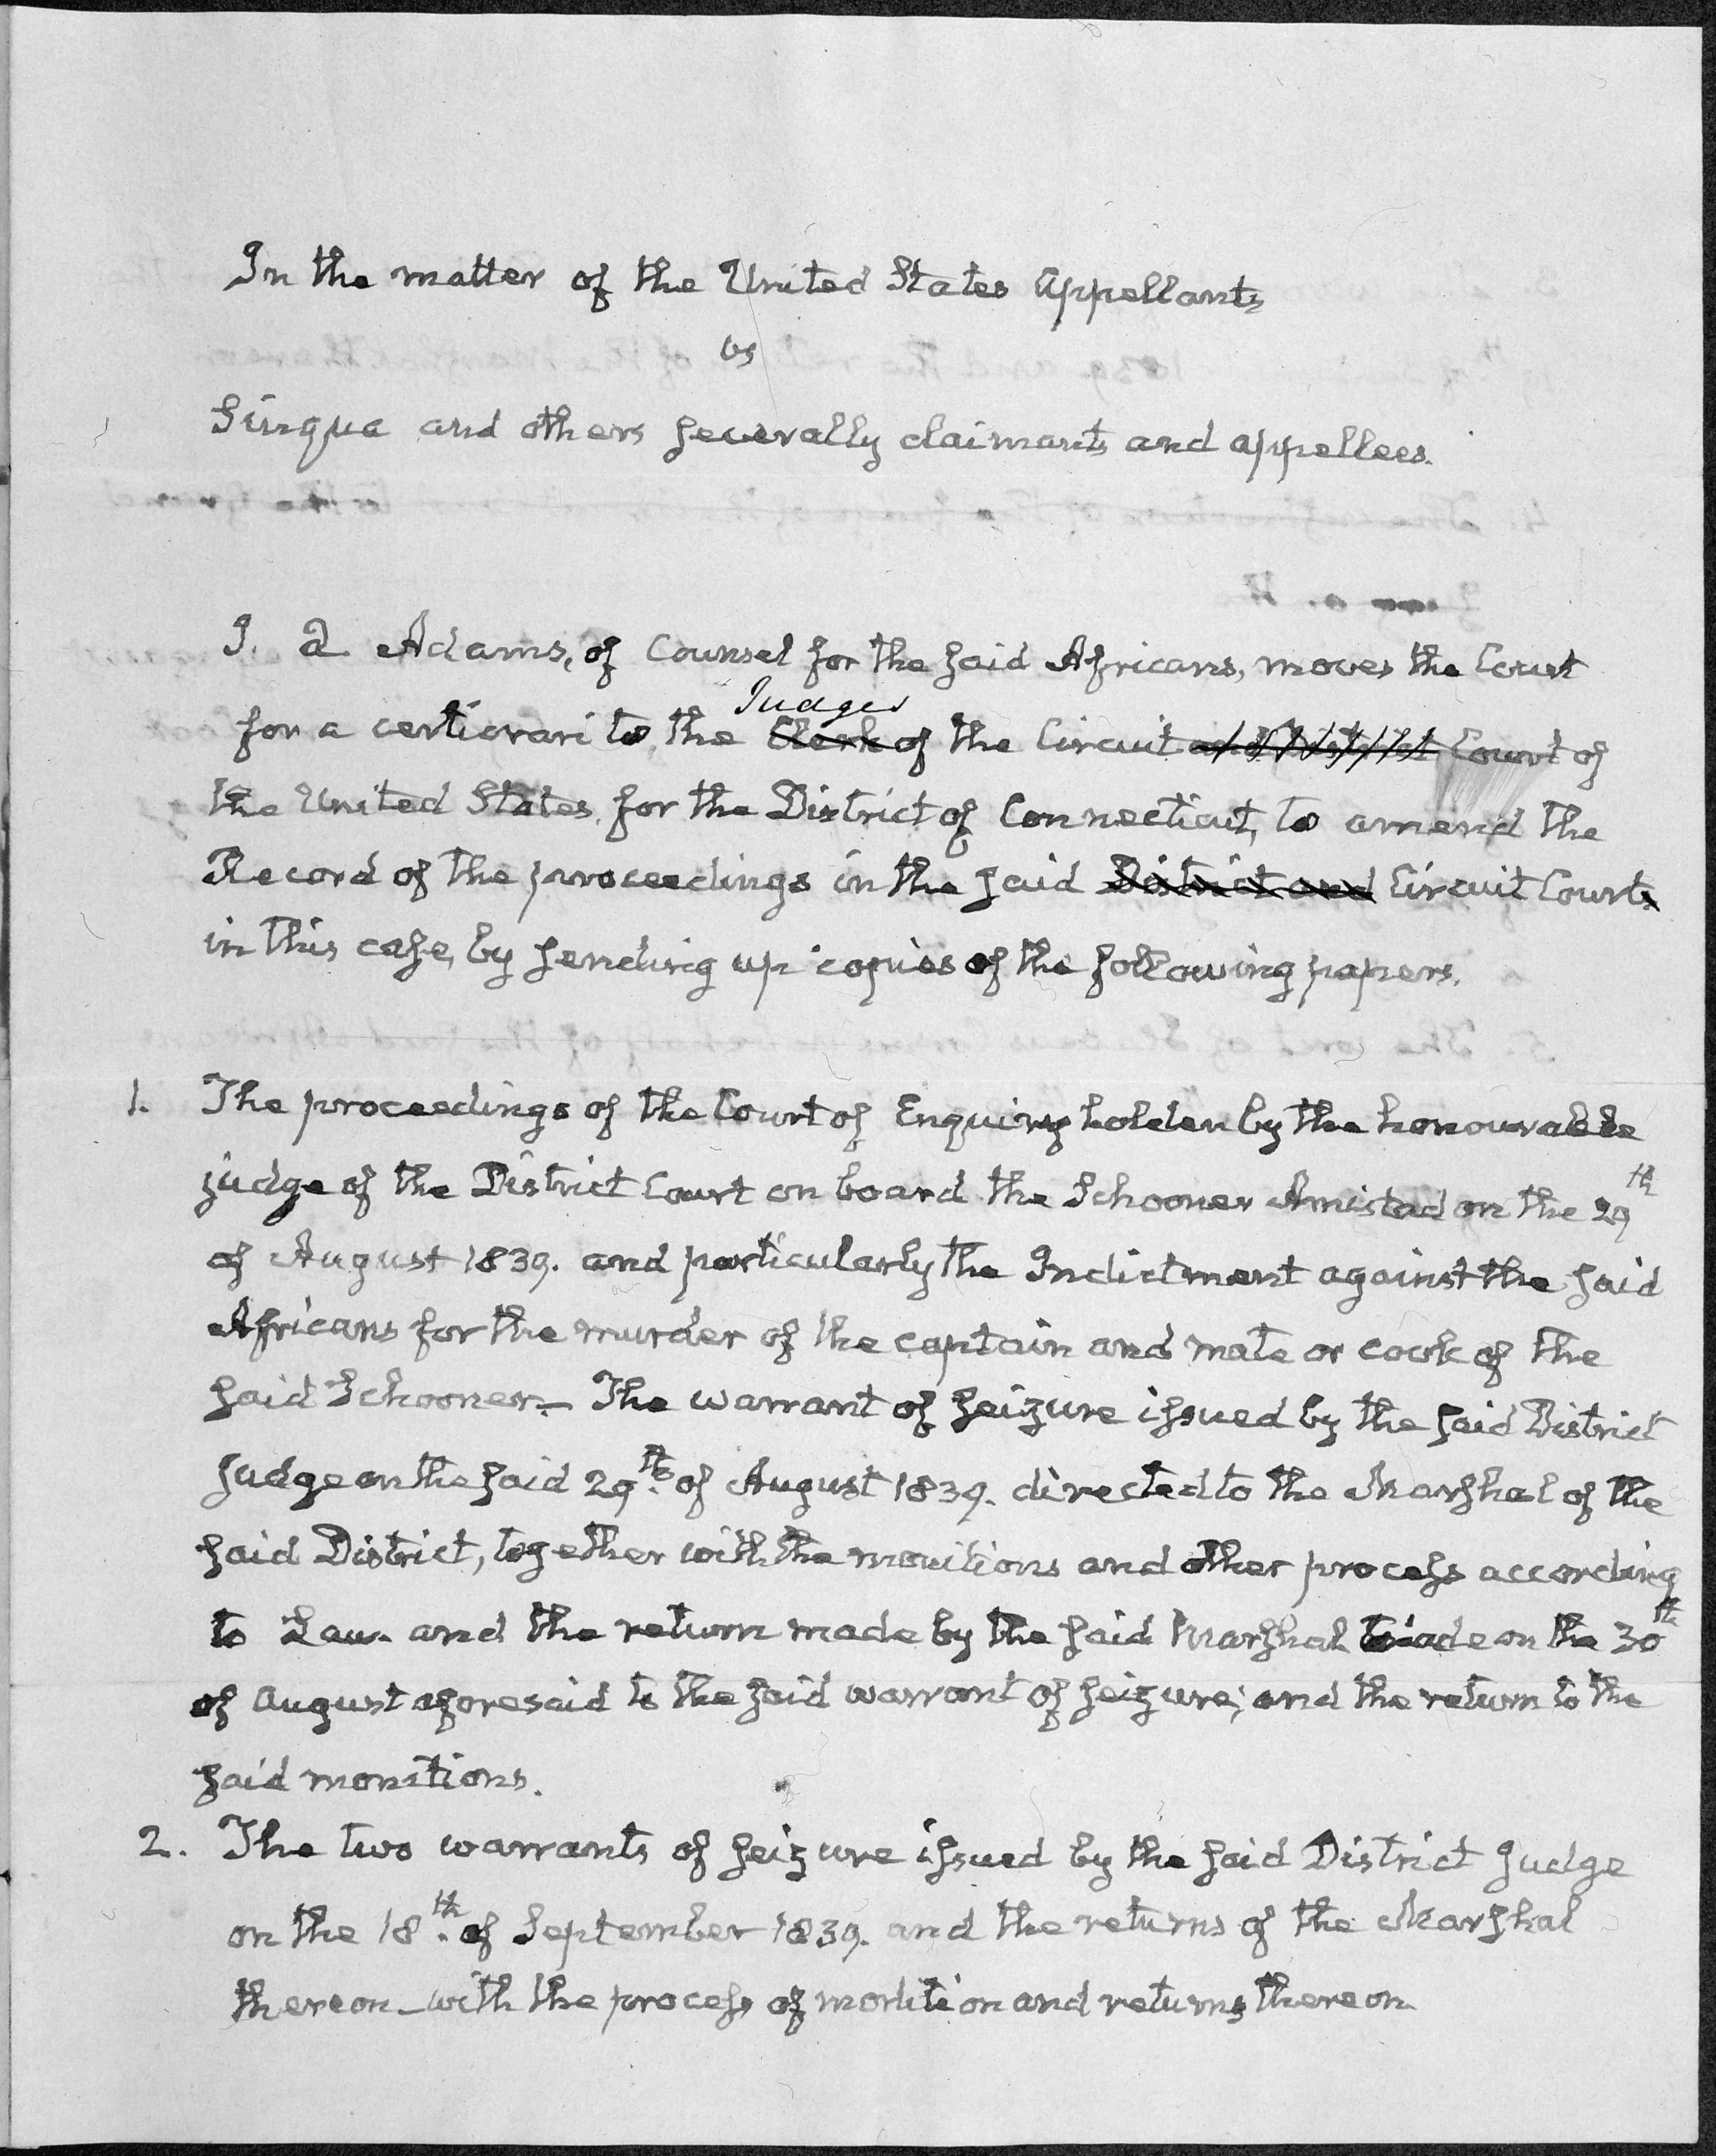 john q reaction paper The 1824 election and the corrupt bargain  john quincy adams was the last president to serve before andrew jackson turned the american political process upside .